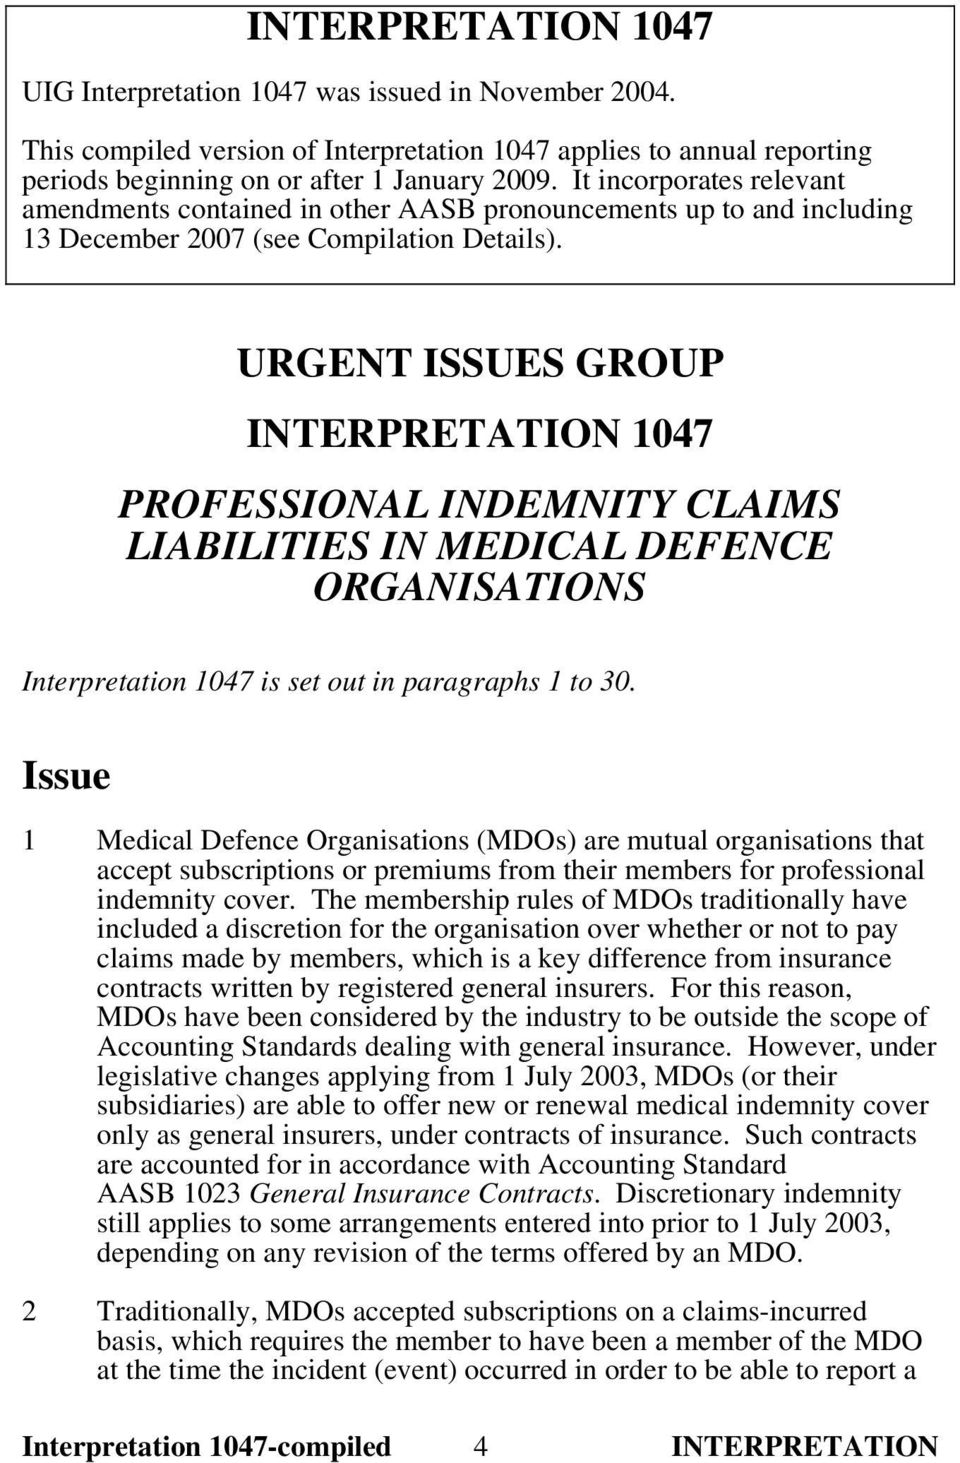 URGENT ISSUES GROUP INTERPRETATION 1047 PROFESSIONAL INDEMNITY CLAIMS LIABILITIES IN MEDICAL DEFENCE ORGANISATIONS Interpretation 1047 is set out in paragraphs 1 to 30.